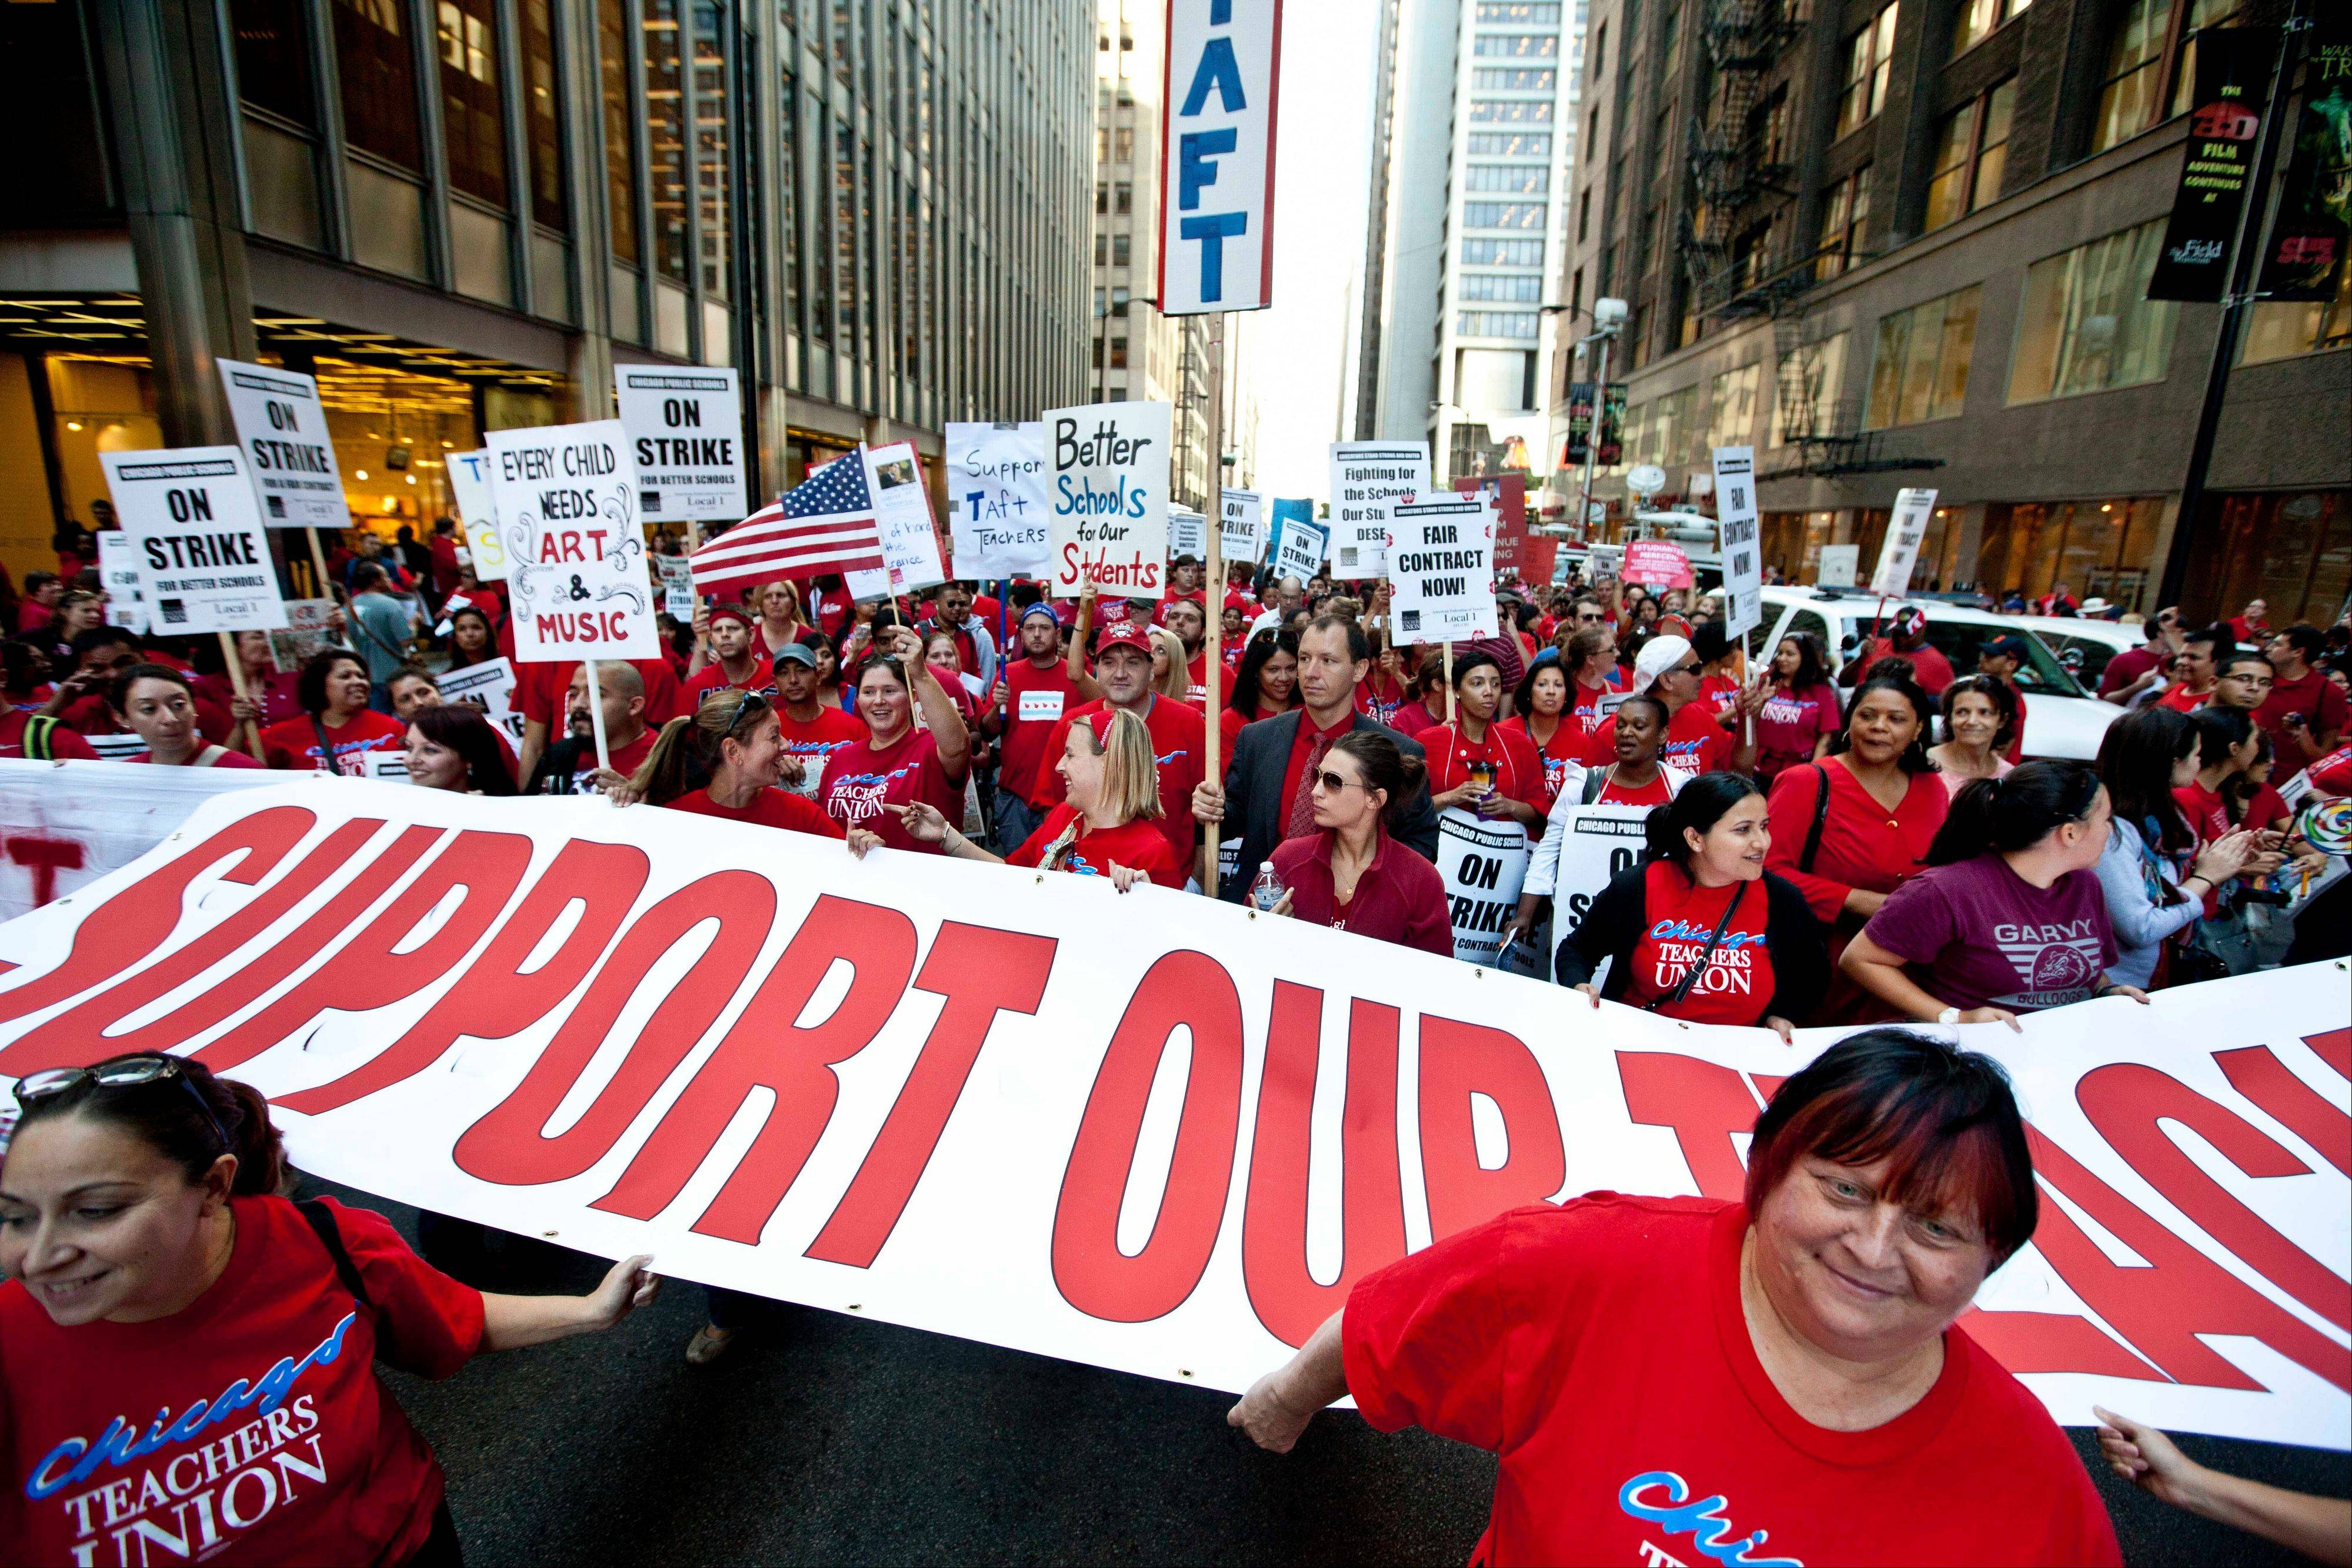 Thousands of public school teachers rally outside Chicago Public Schools district headquarters on the first day of strike action over teachers' contracts on Monday, Sept. 10, 2012 in Chicago.